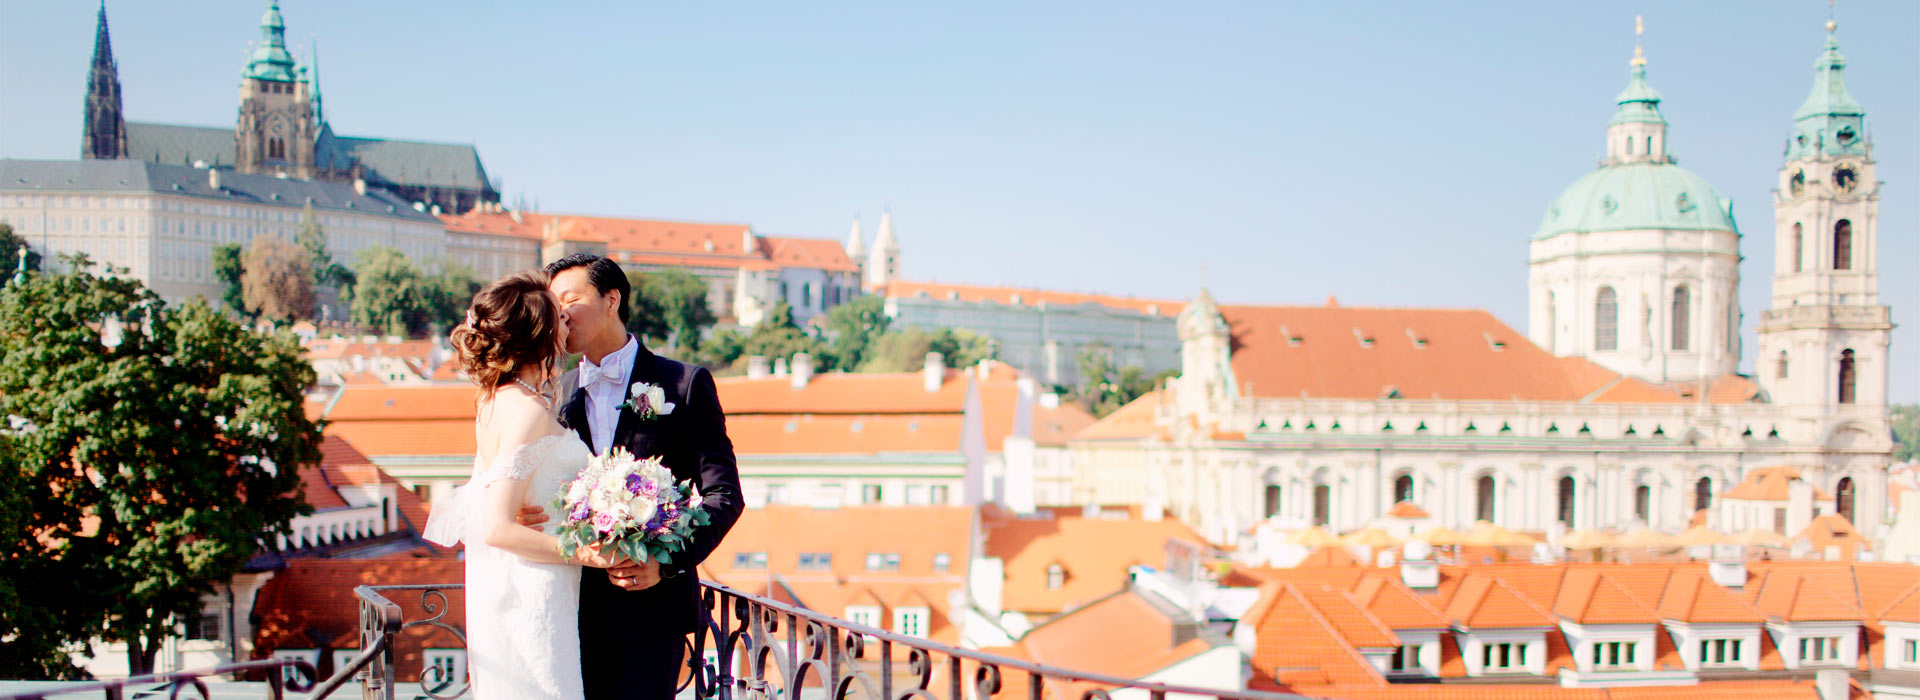 Wedding planner Prague